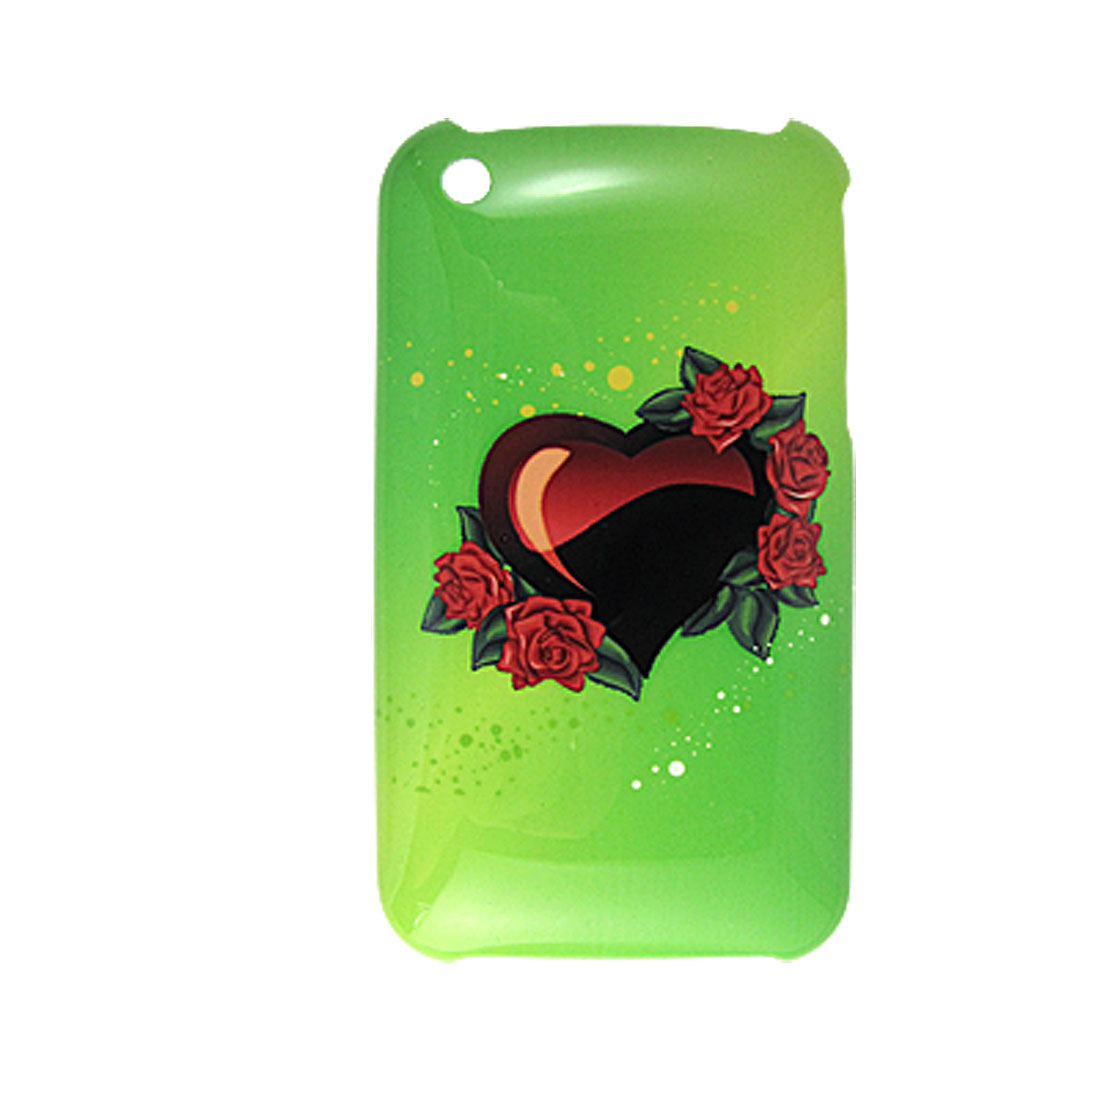 IMD Hard Plastic Case Rose Back Cover Green for iPhone 3G